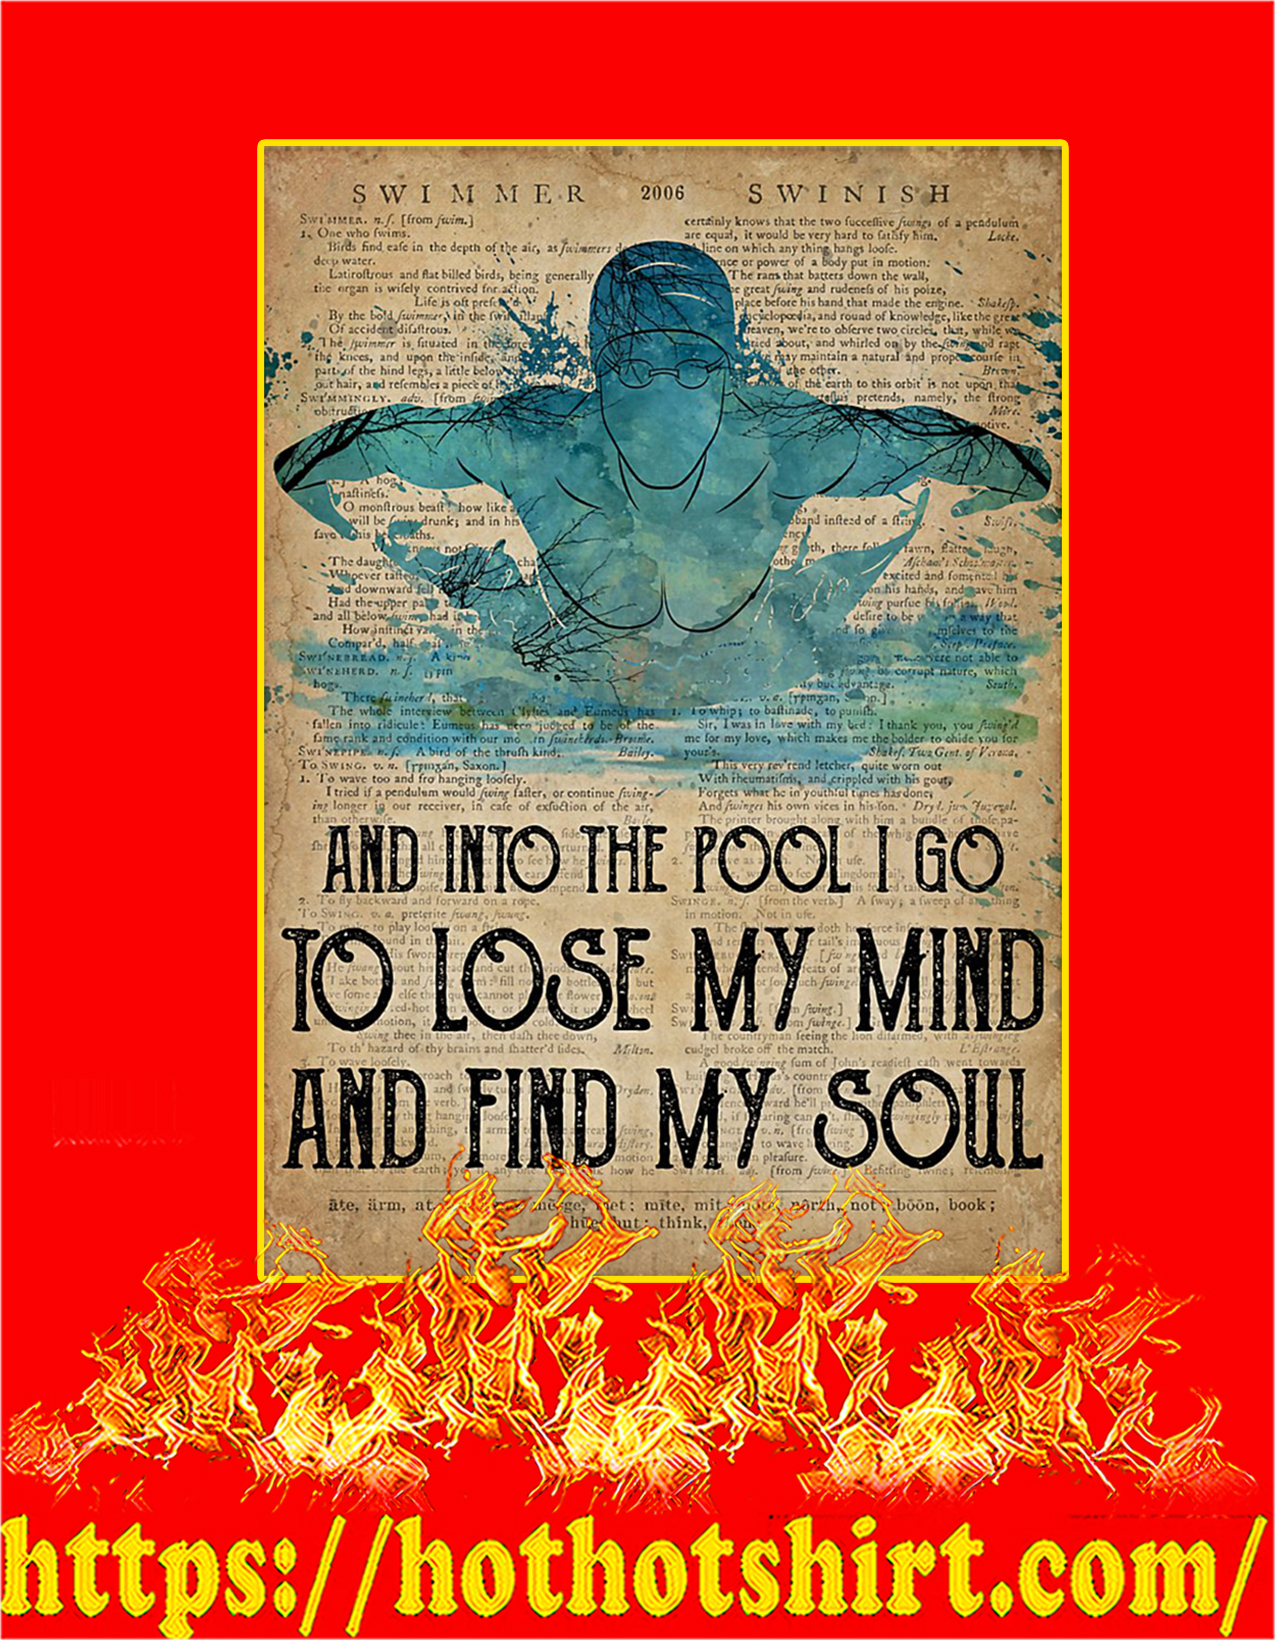 Swimming to loose my mind and find my soul poster - A2